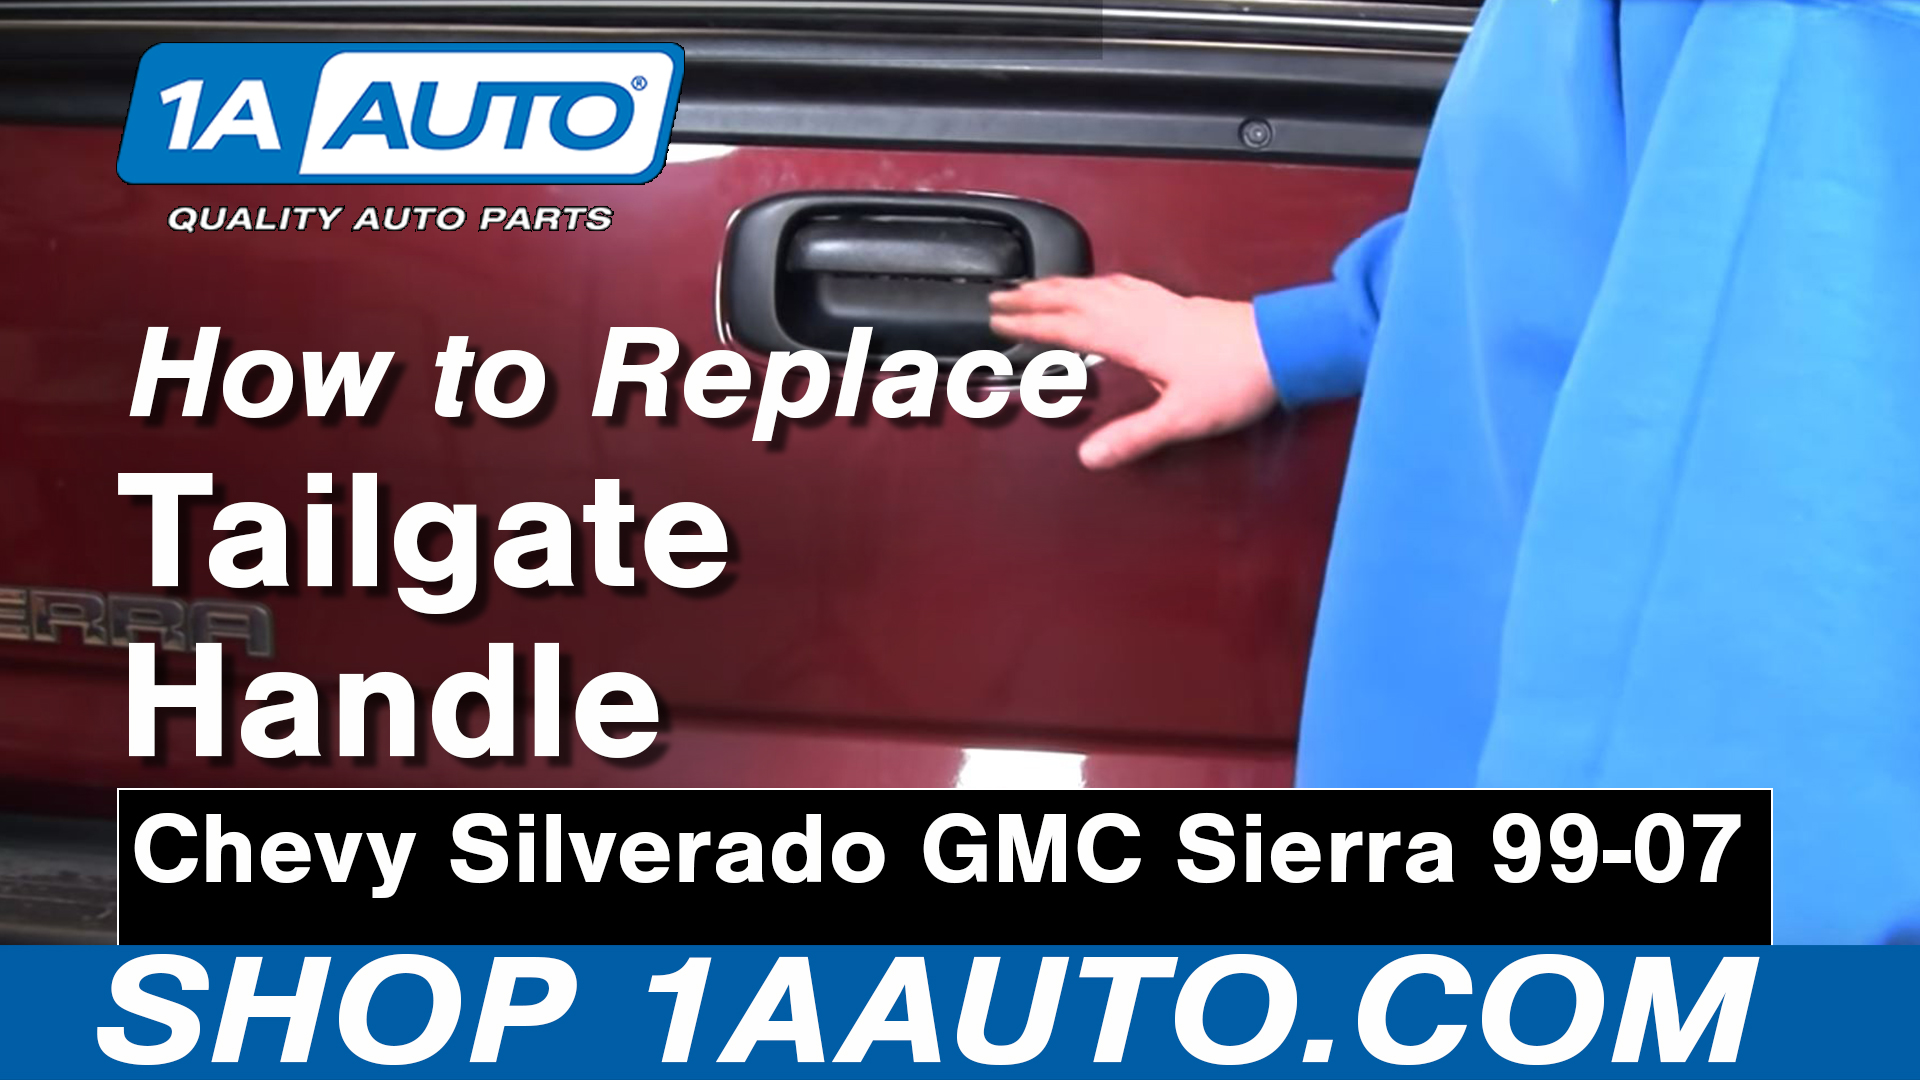 How to Replace Tailgate Handle & Bezel 99-06 GMC Sierra